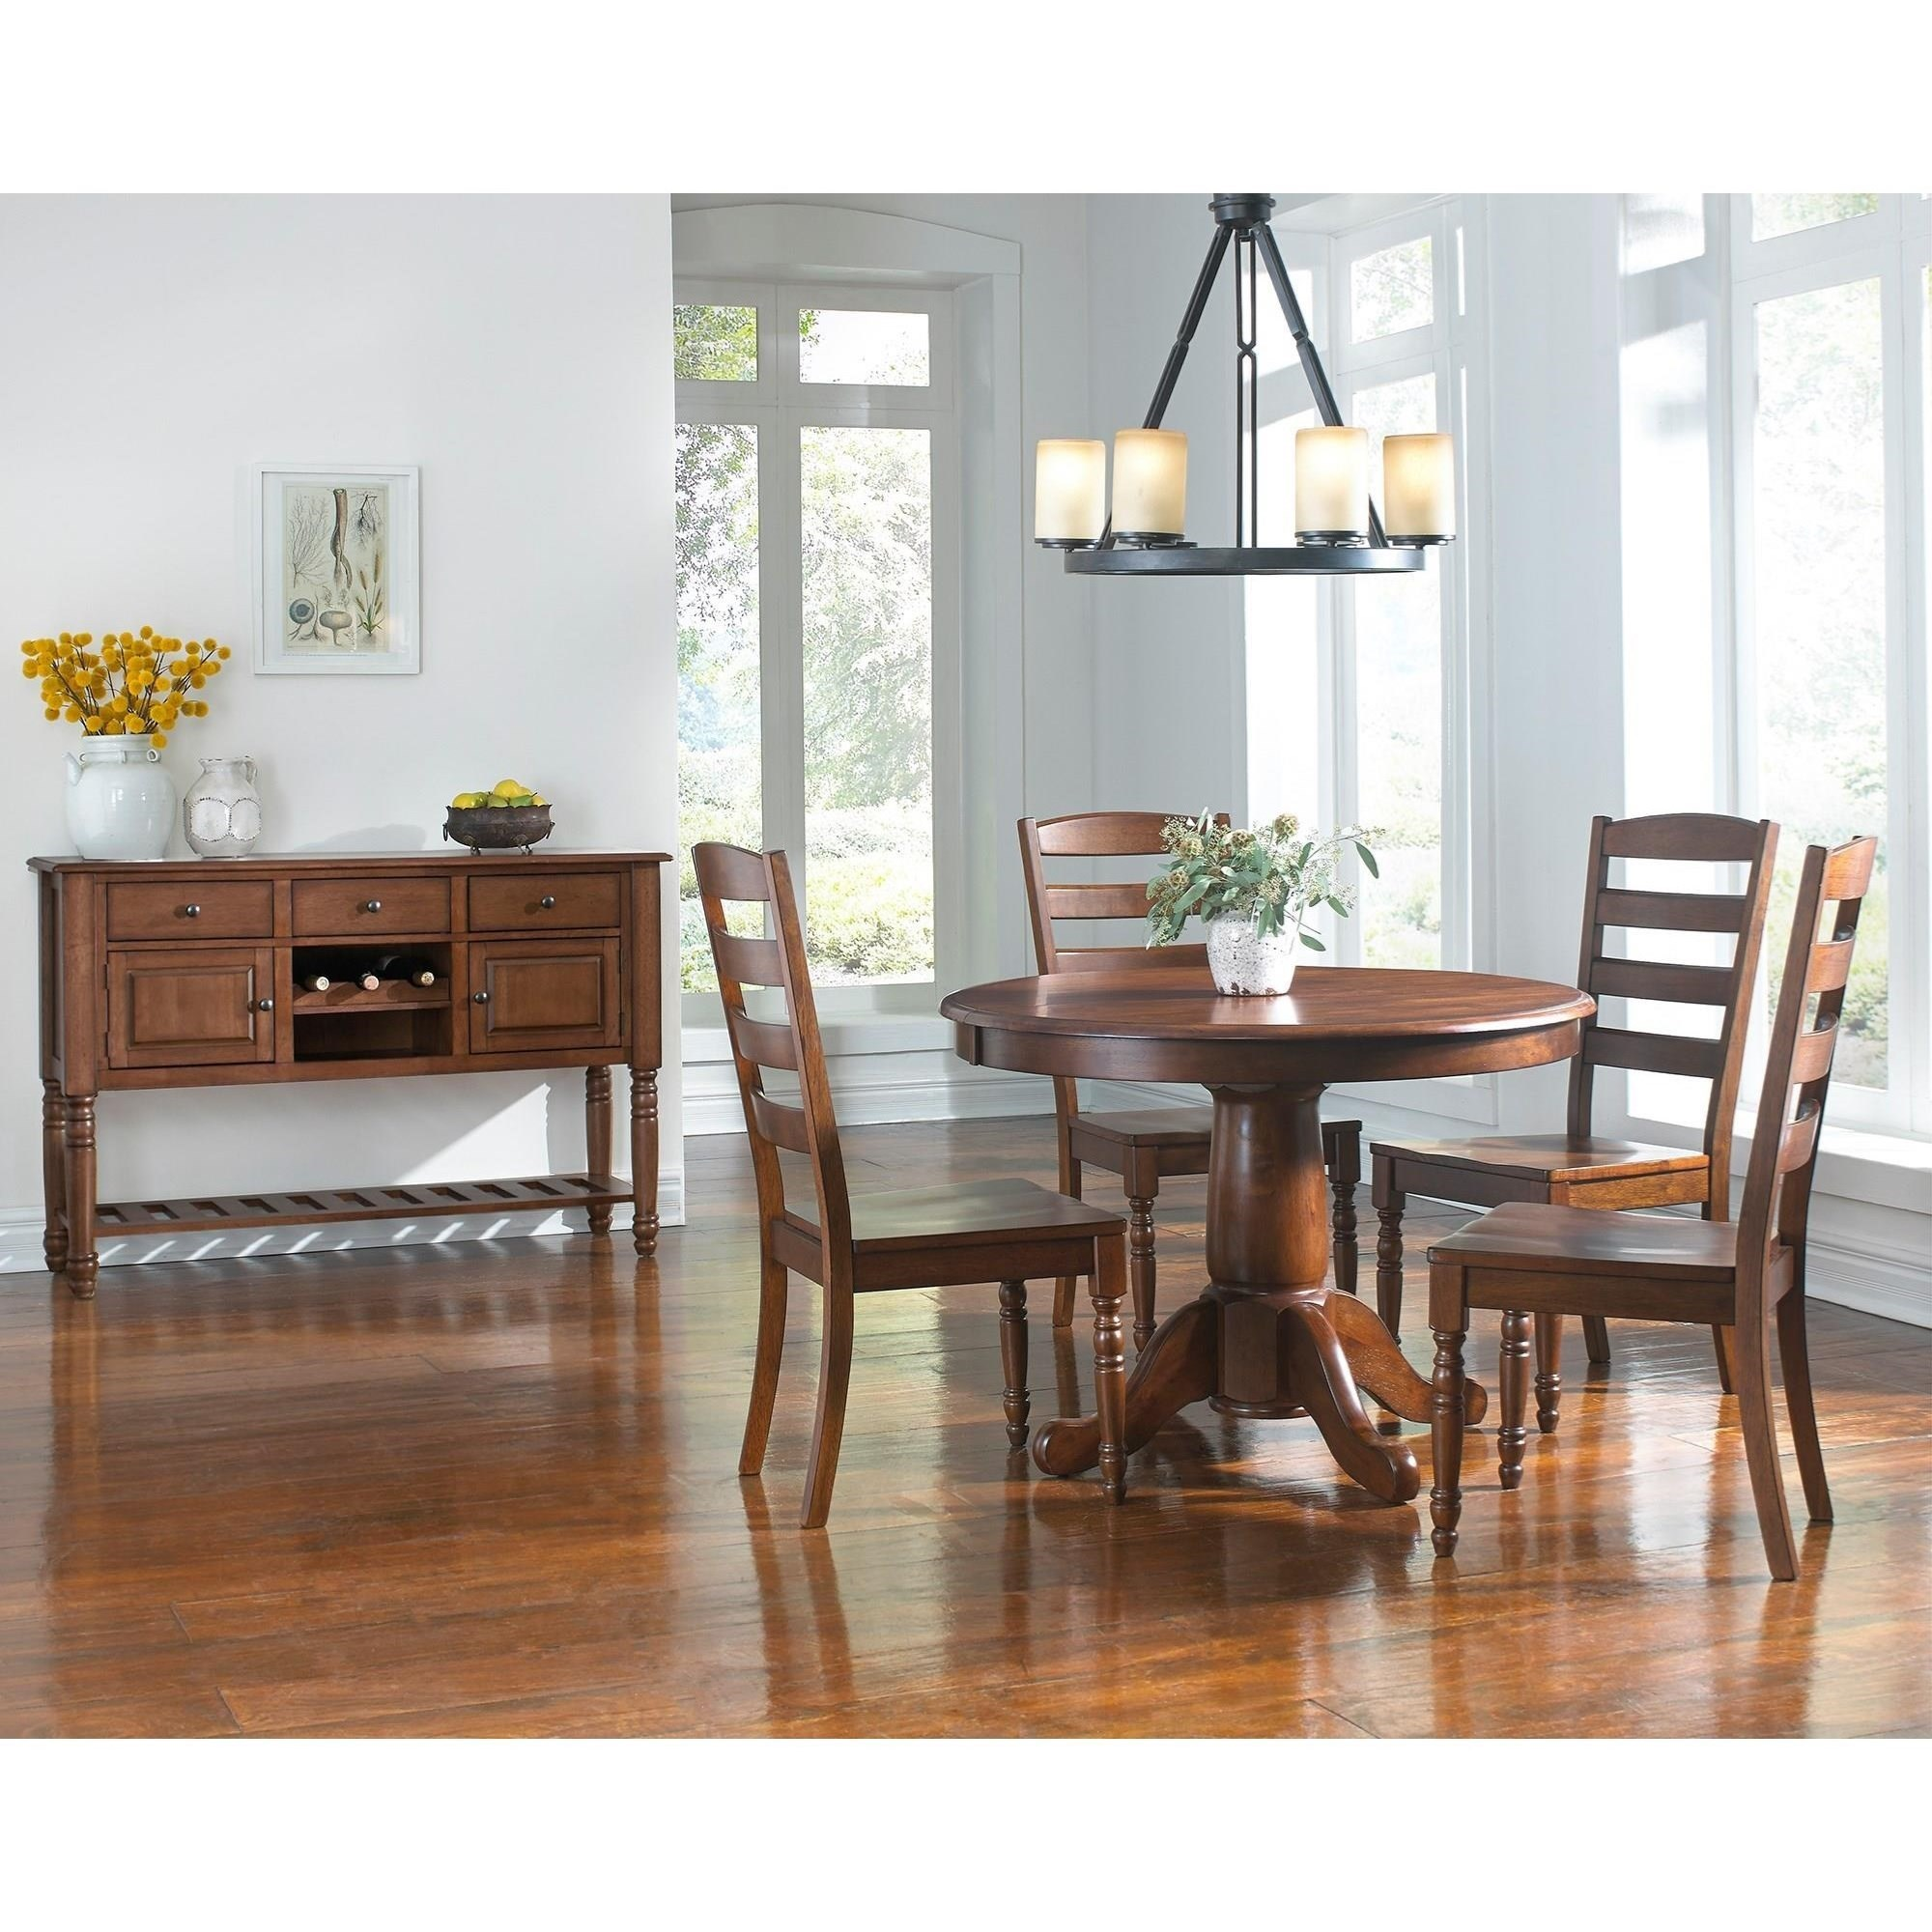 Aamerica roanoke casual dining room group wayside for Casual dining room